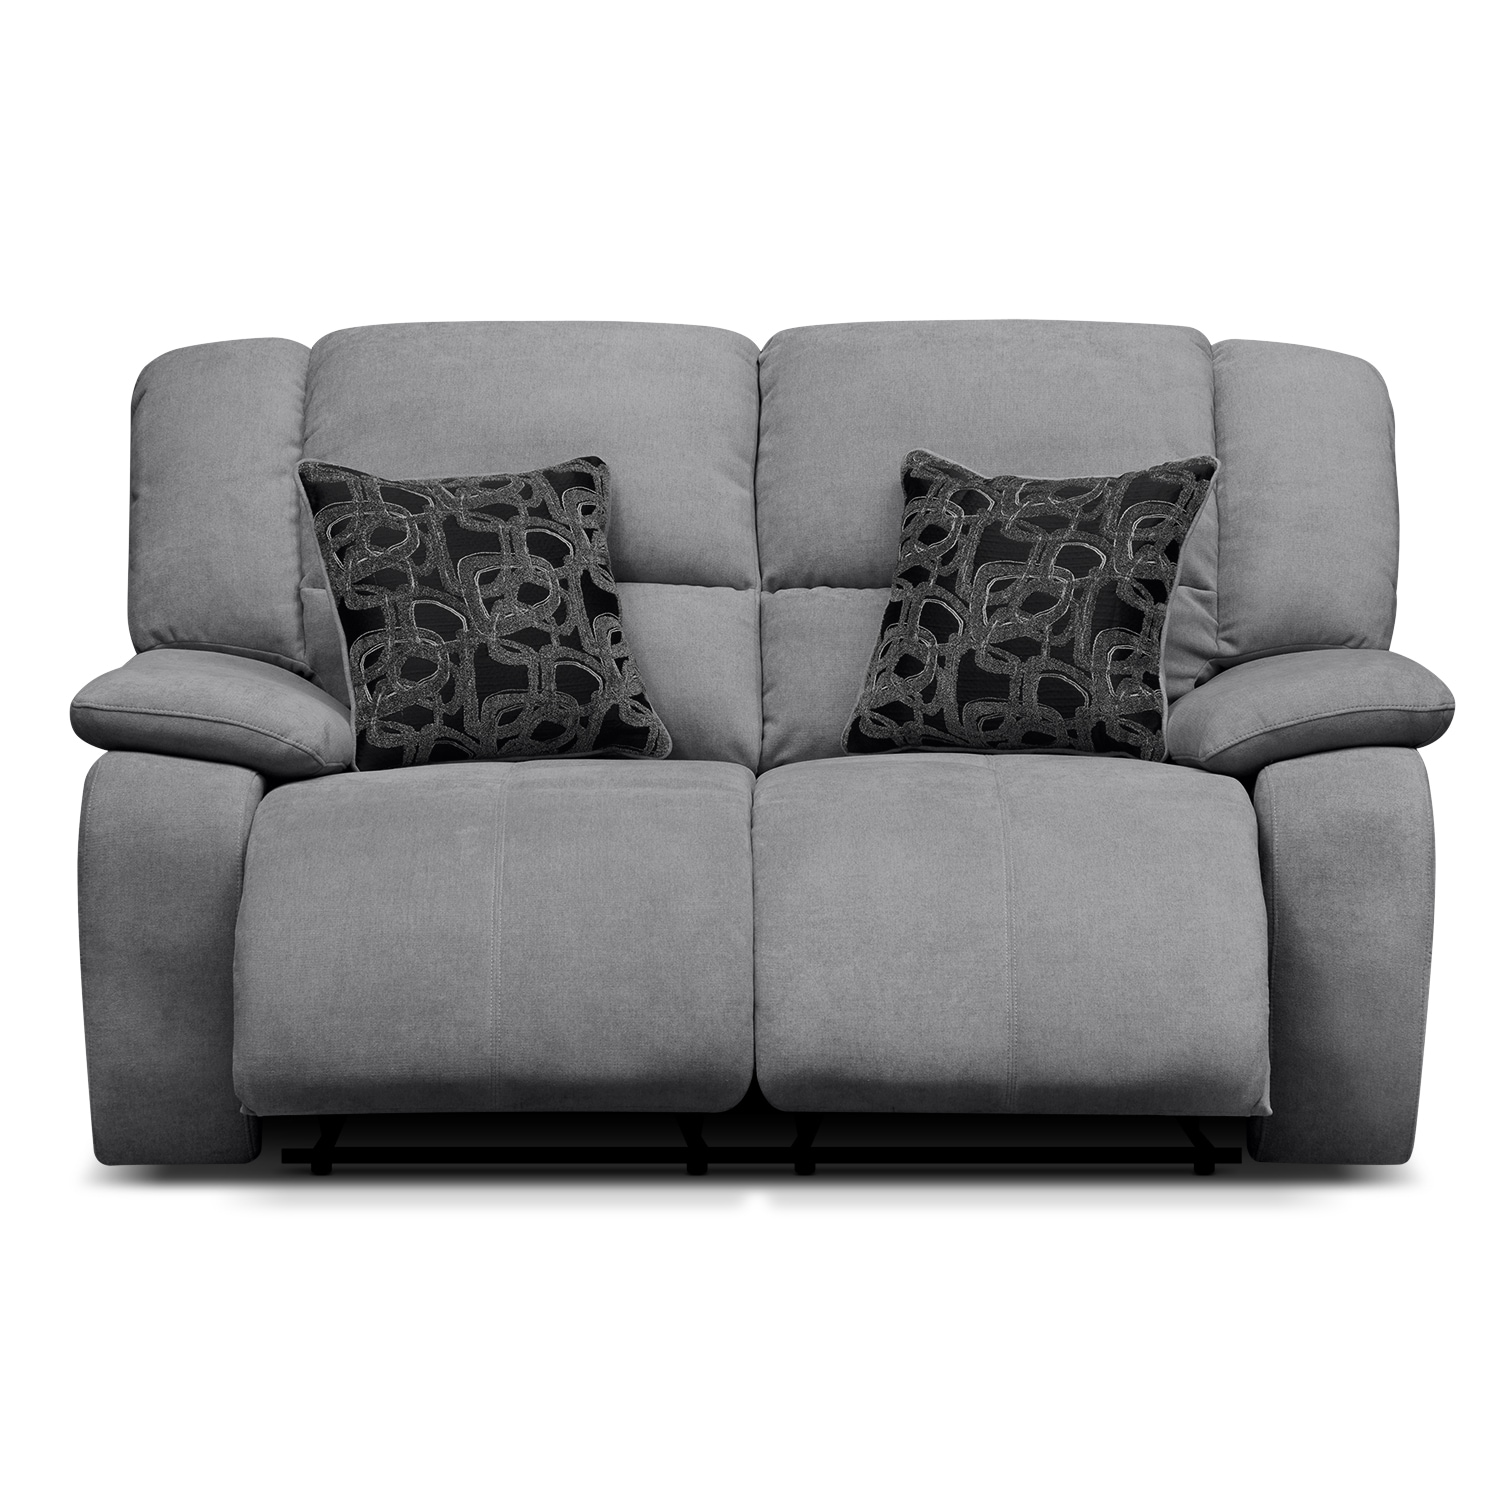 Destin gray upholstery power reclining loveseat value Power reclining sofas and loveseats